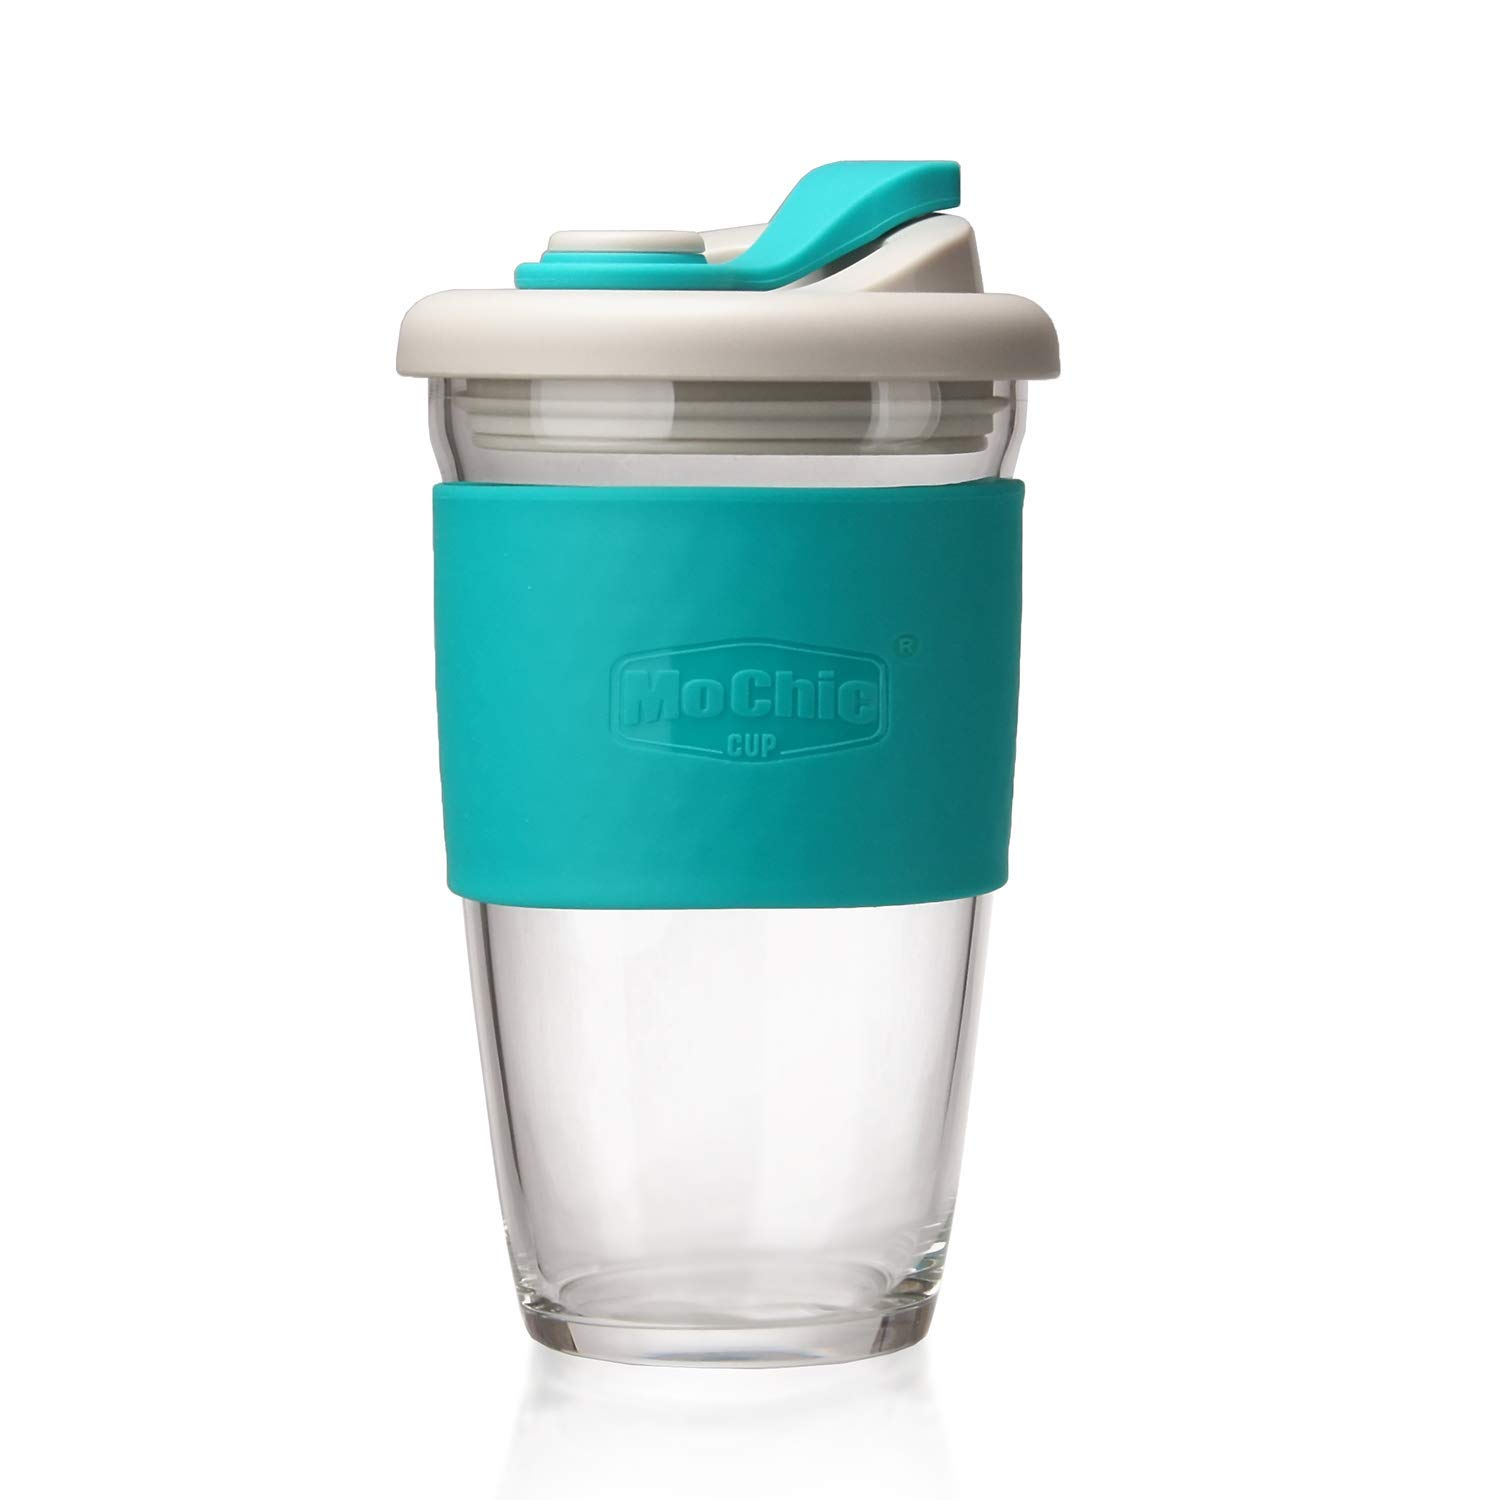 MOCHIC CUP Reusable Coffee Cup Glass Travel Mug with Lid and Non-slip Sleeve Dishwasher and Microwave Safe Portable Durable Drinking Tumbler Eco-Friendly and BPA-Free (Mint Green, 16 OZ)